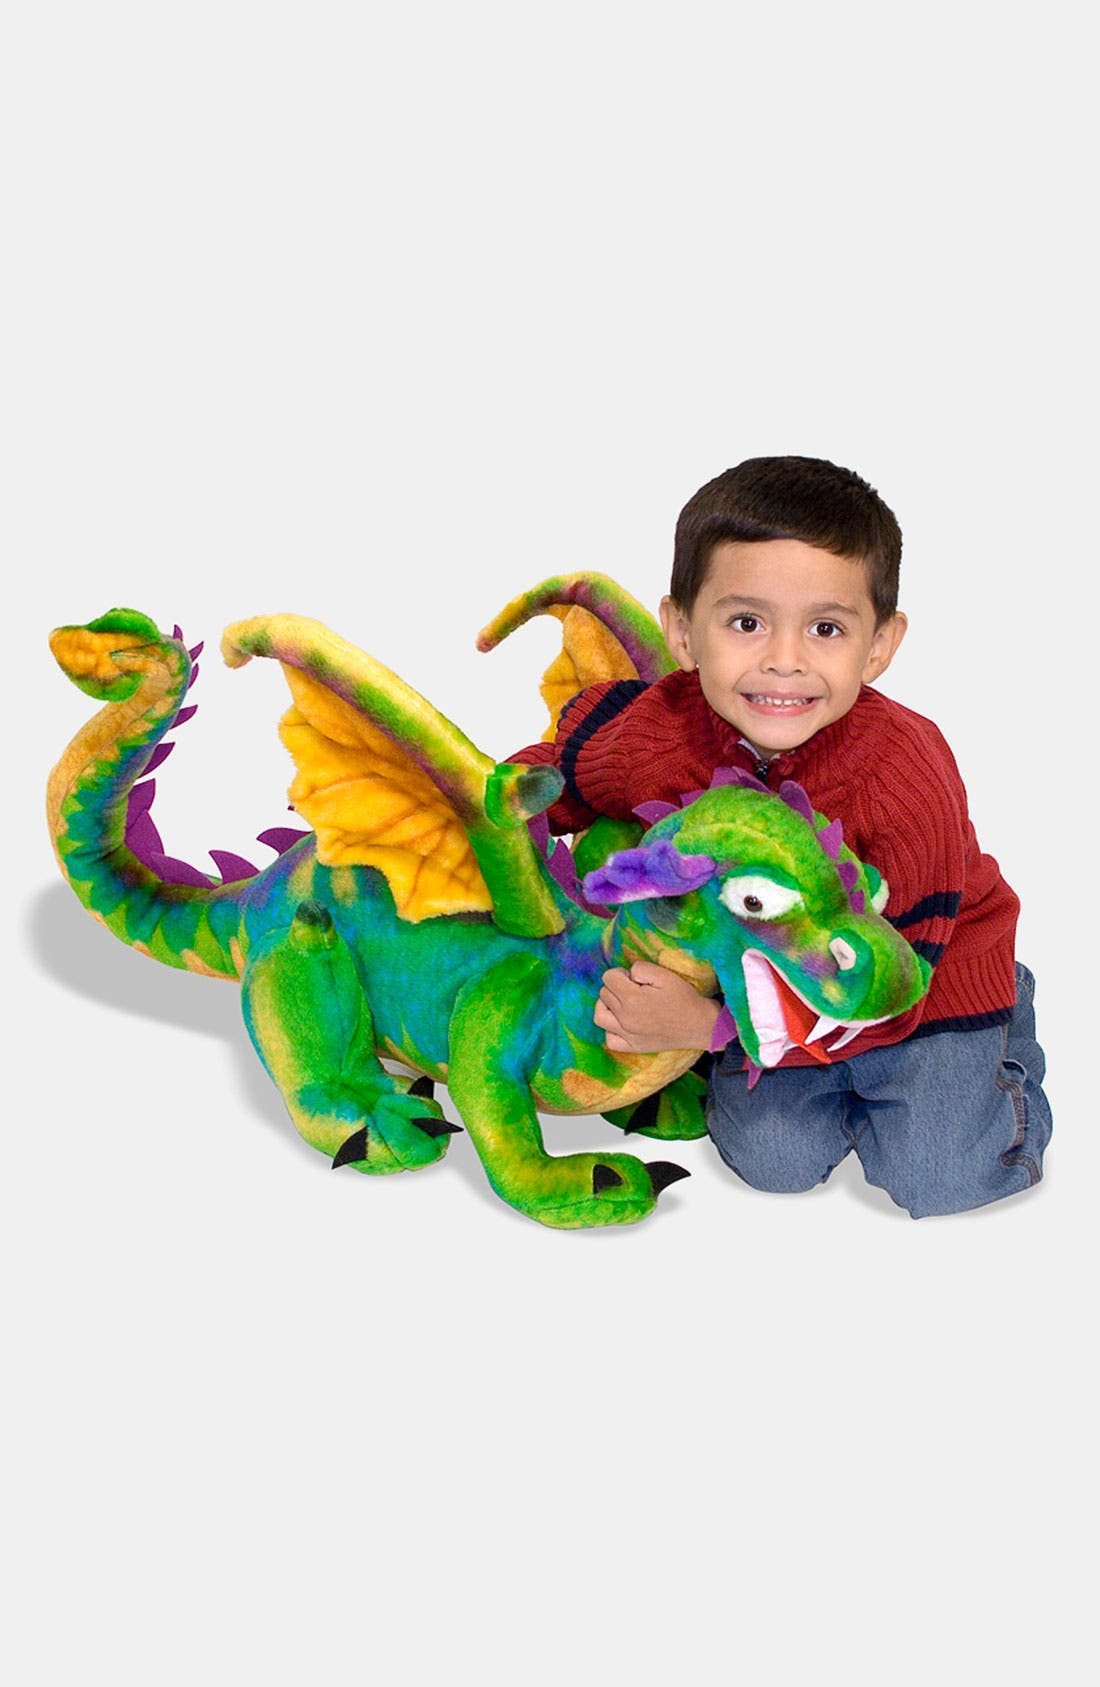 Main Image - Melissa & Doug Oversized Plush Stuffed Dragon